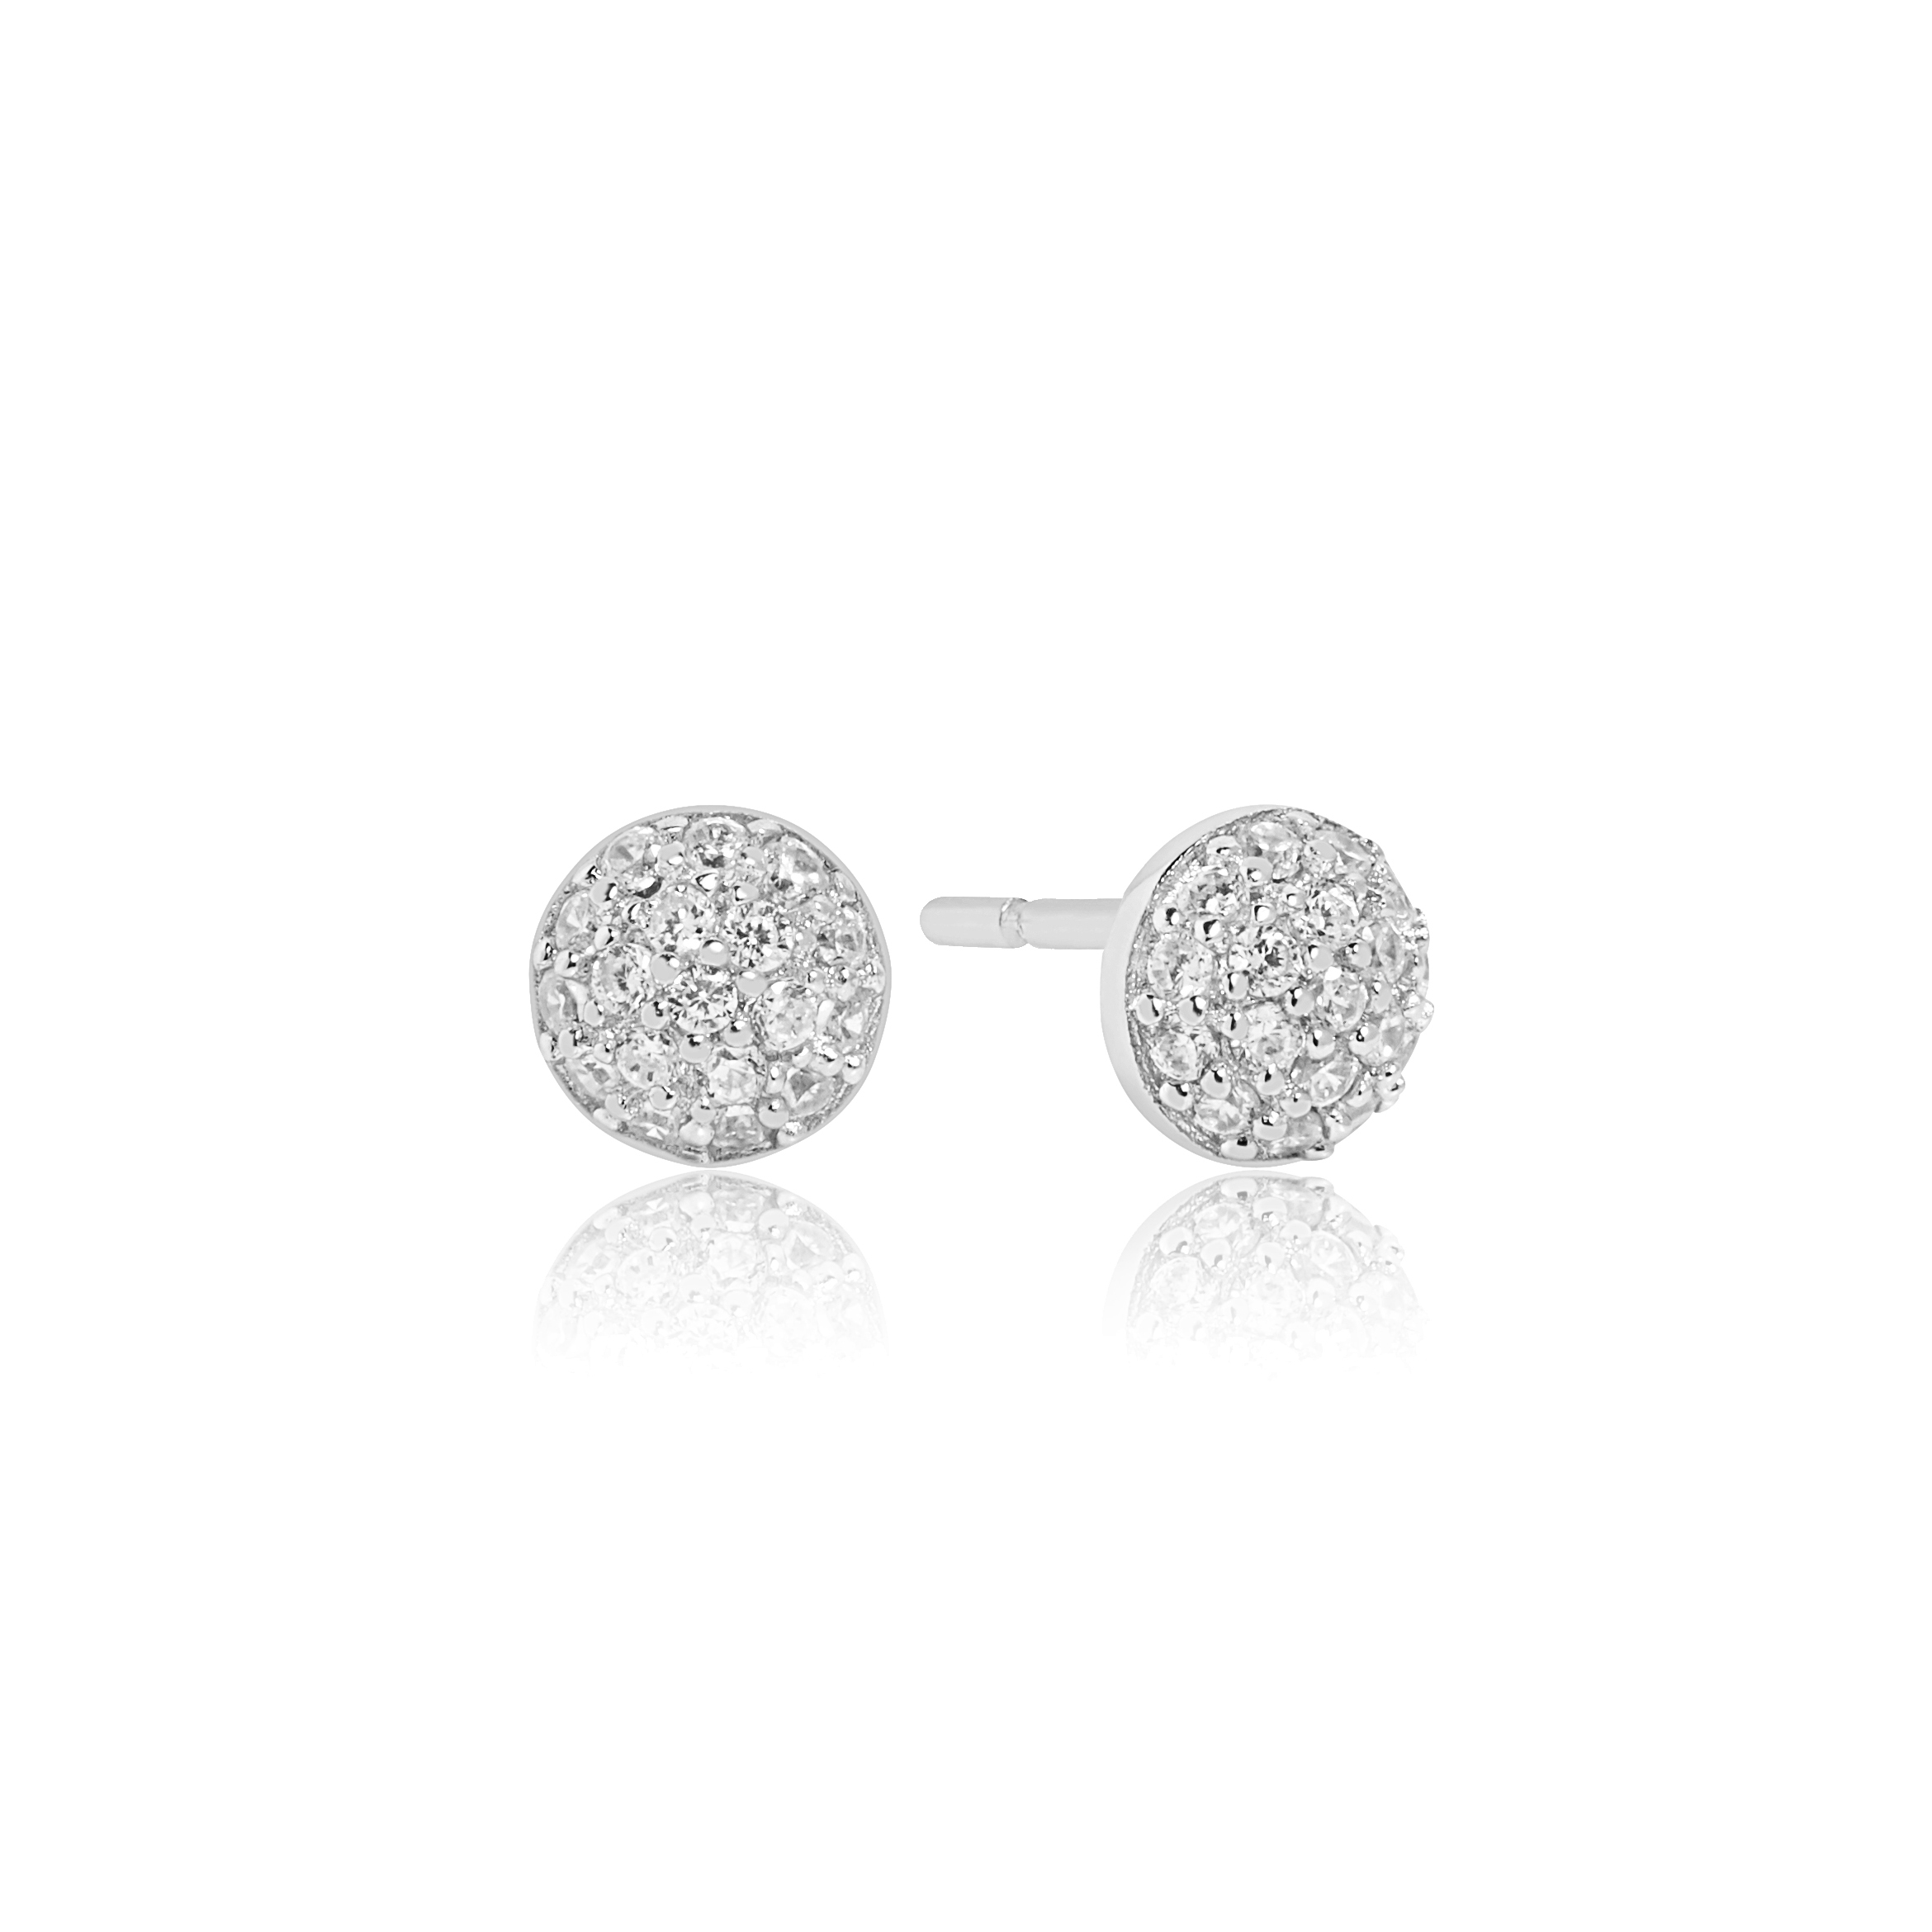 Silver pave set cubic zirconia Domed studs-Carats Jewellers